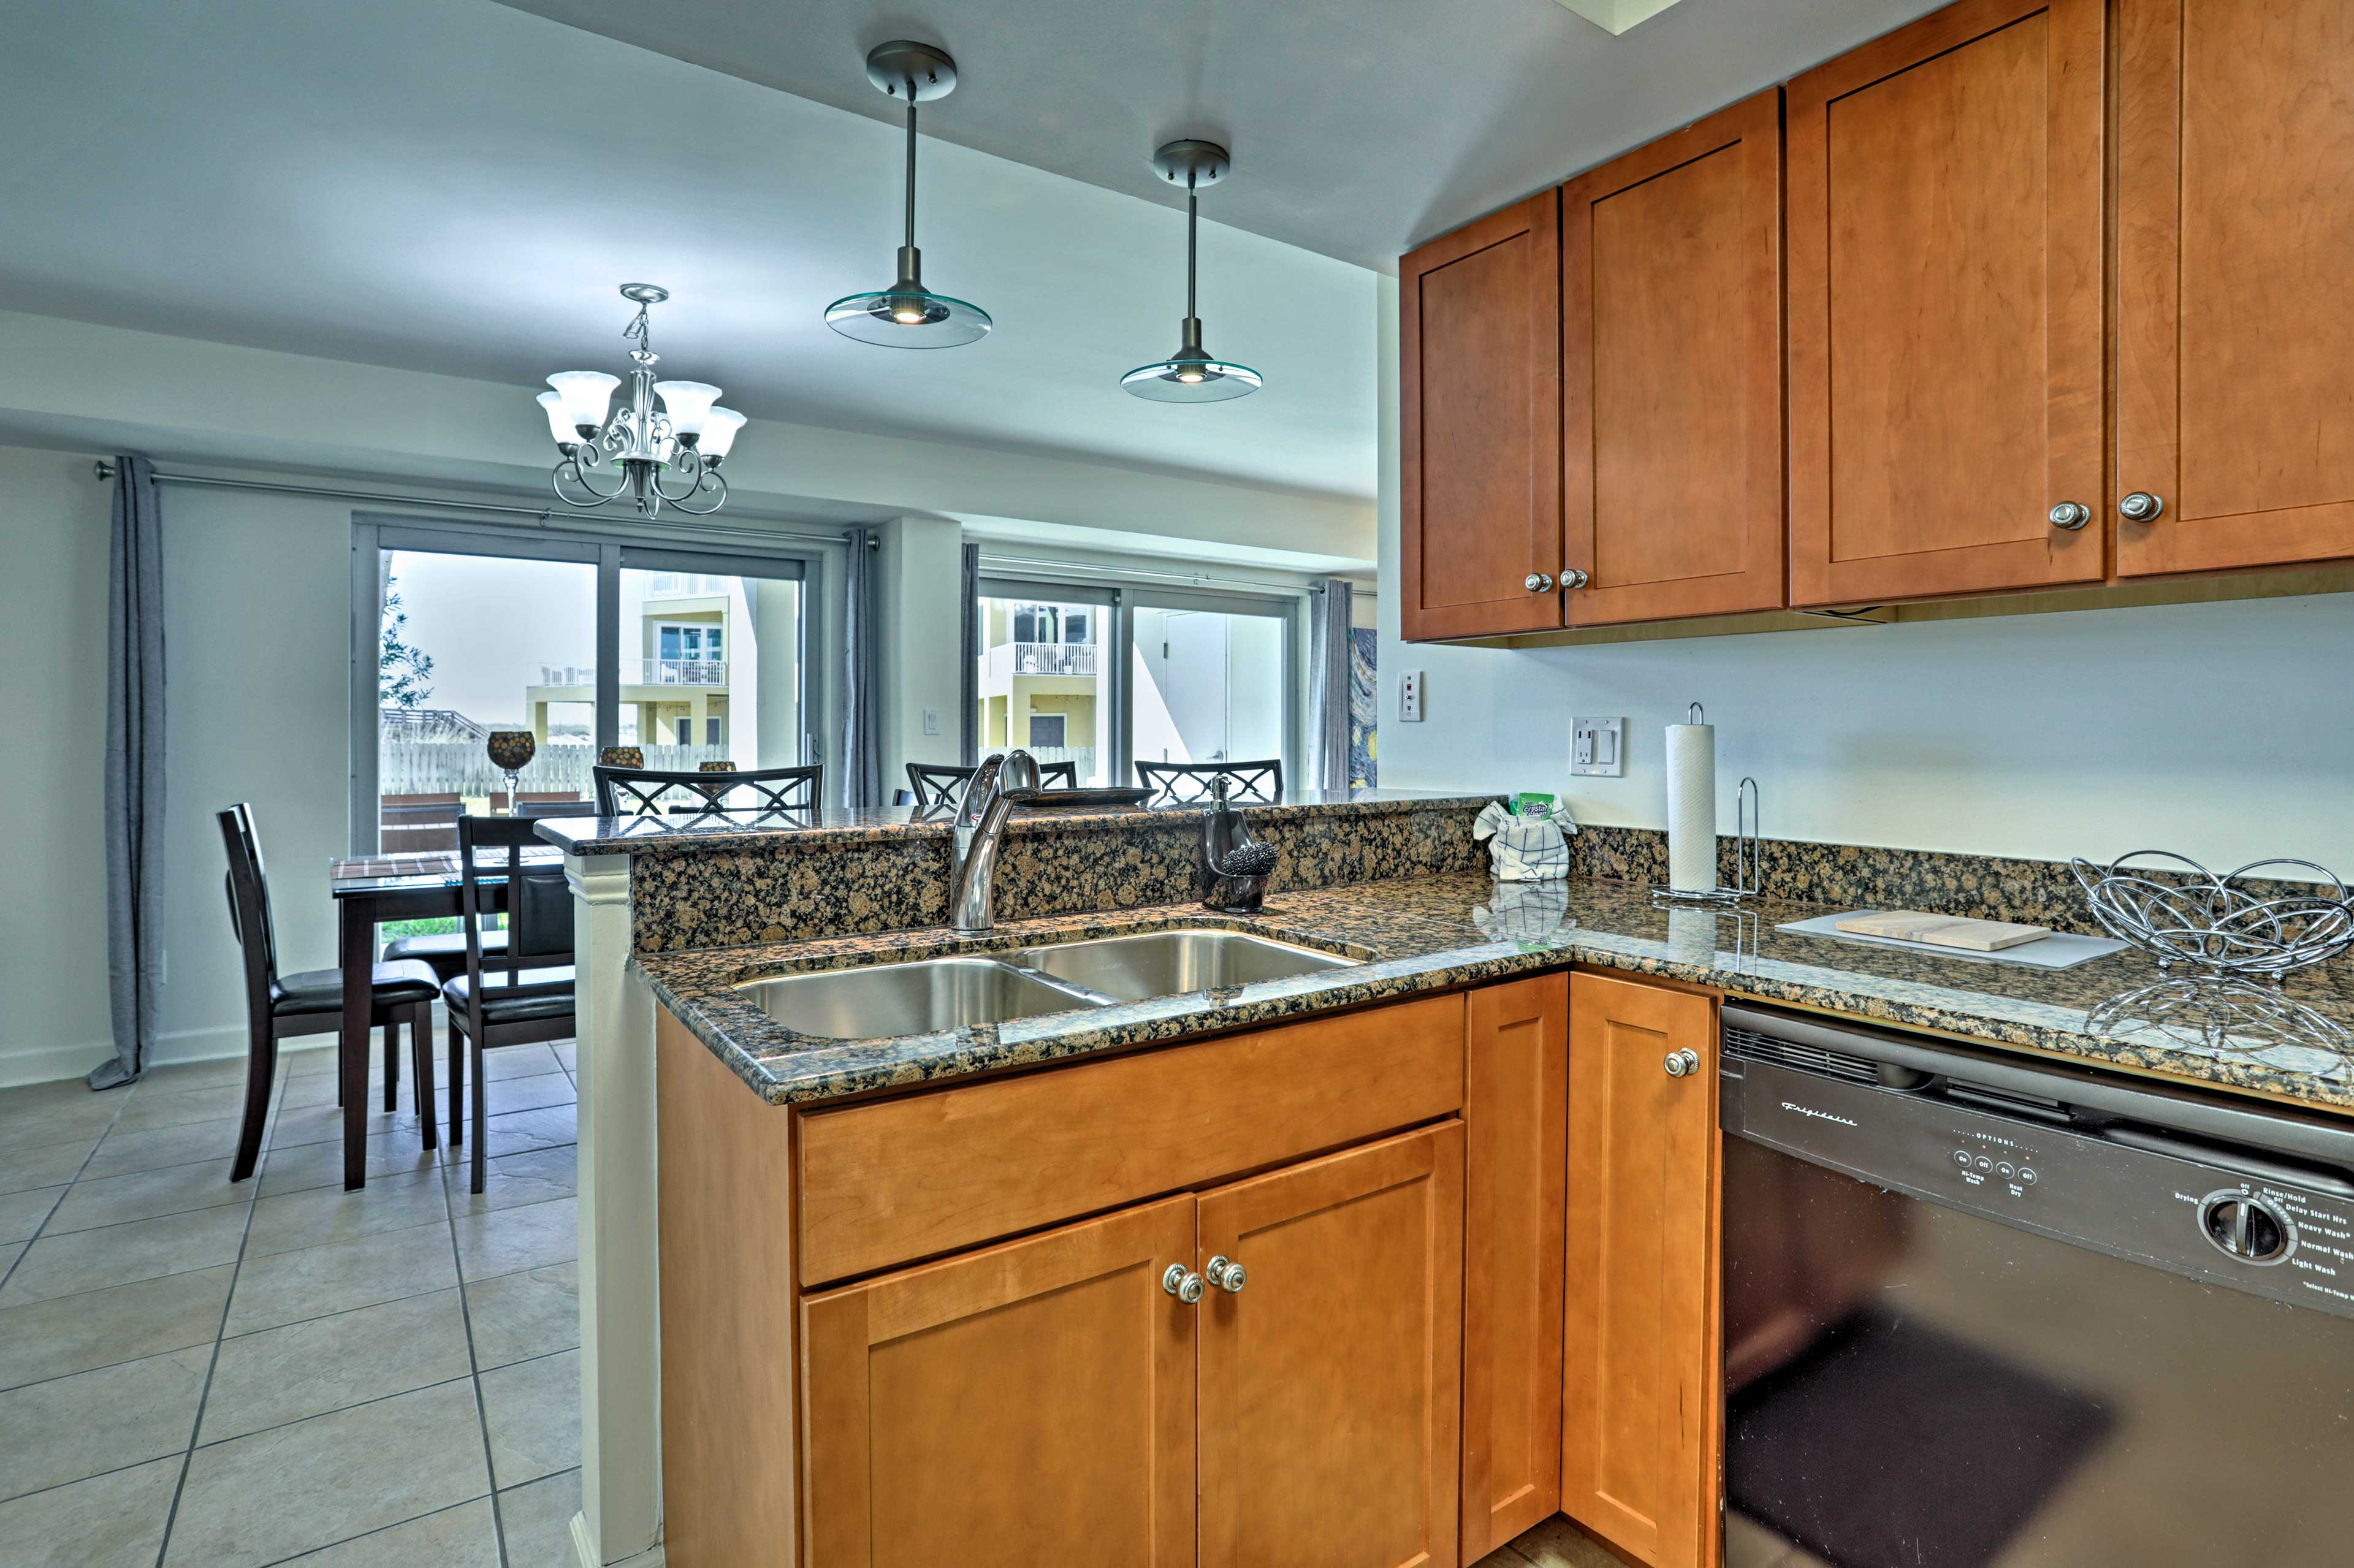 The fully equipped kitchen features granite countertops.